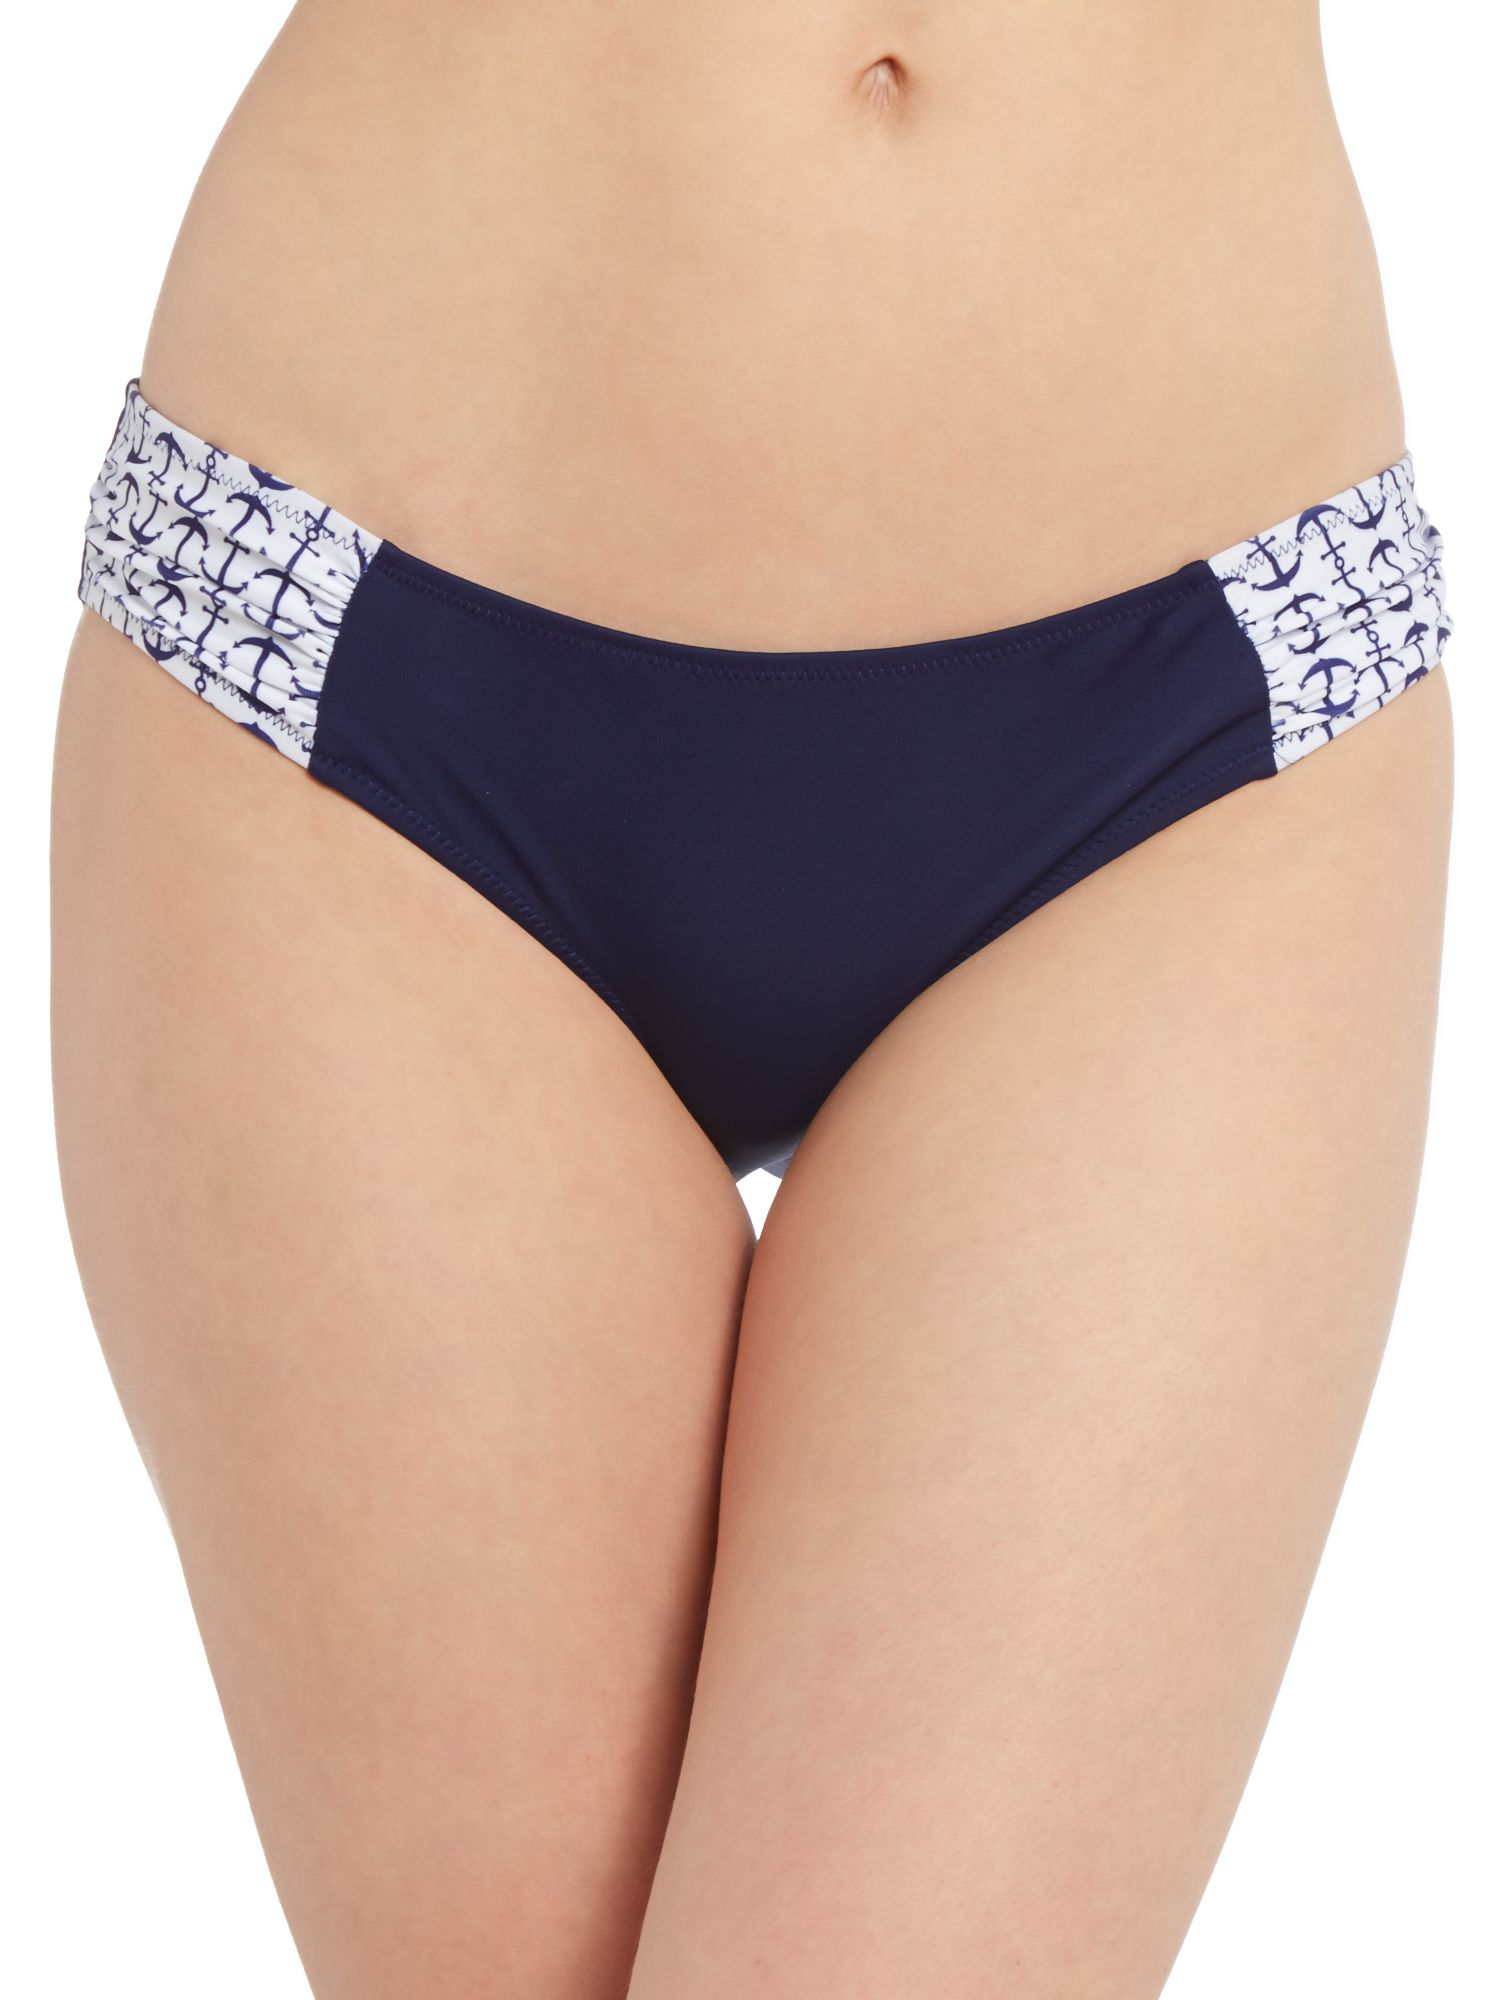 Tab detail brief